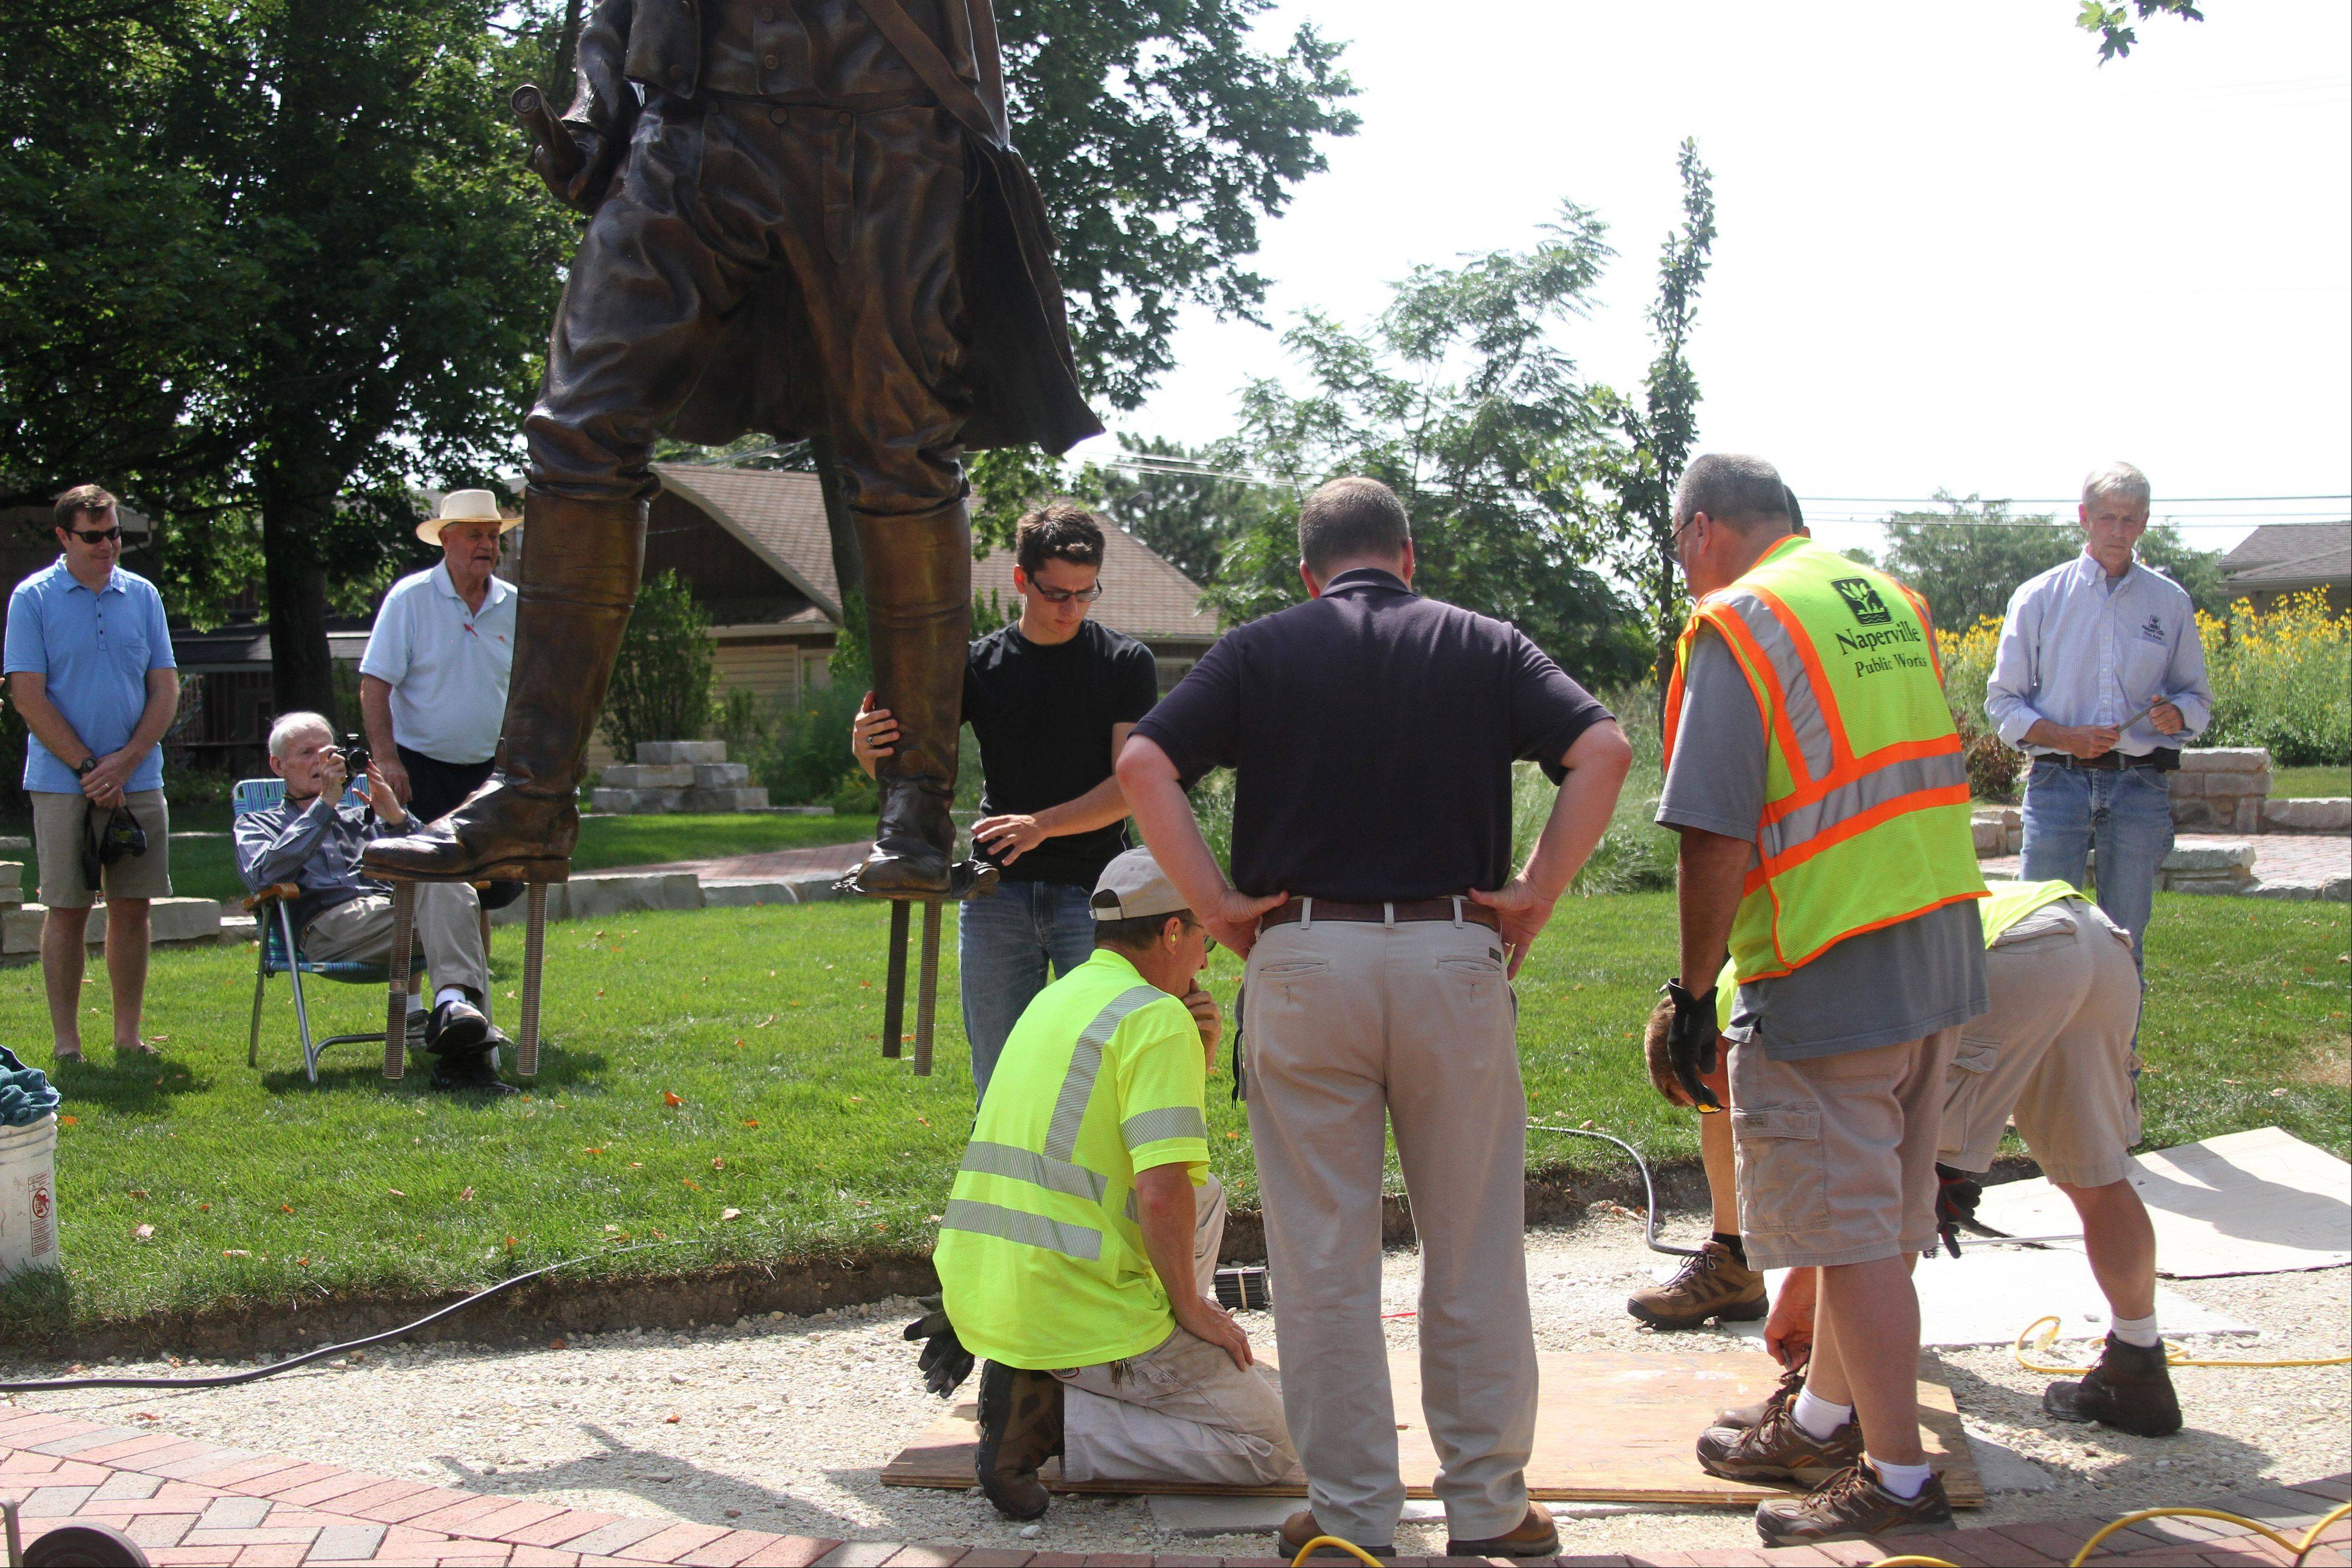 A sculpture of Naperville founder Joseph Naper is lowered into place Aug. 9. The 1,500- to 2,000-pound sculpture will be dedicated at 4 p.m. Friday at the Naper Homestead Historic Site at Mill Street and Jefferson Avenue.